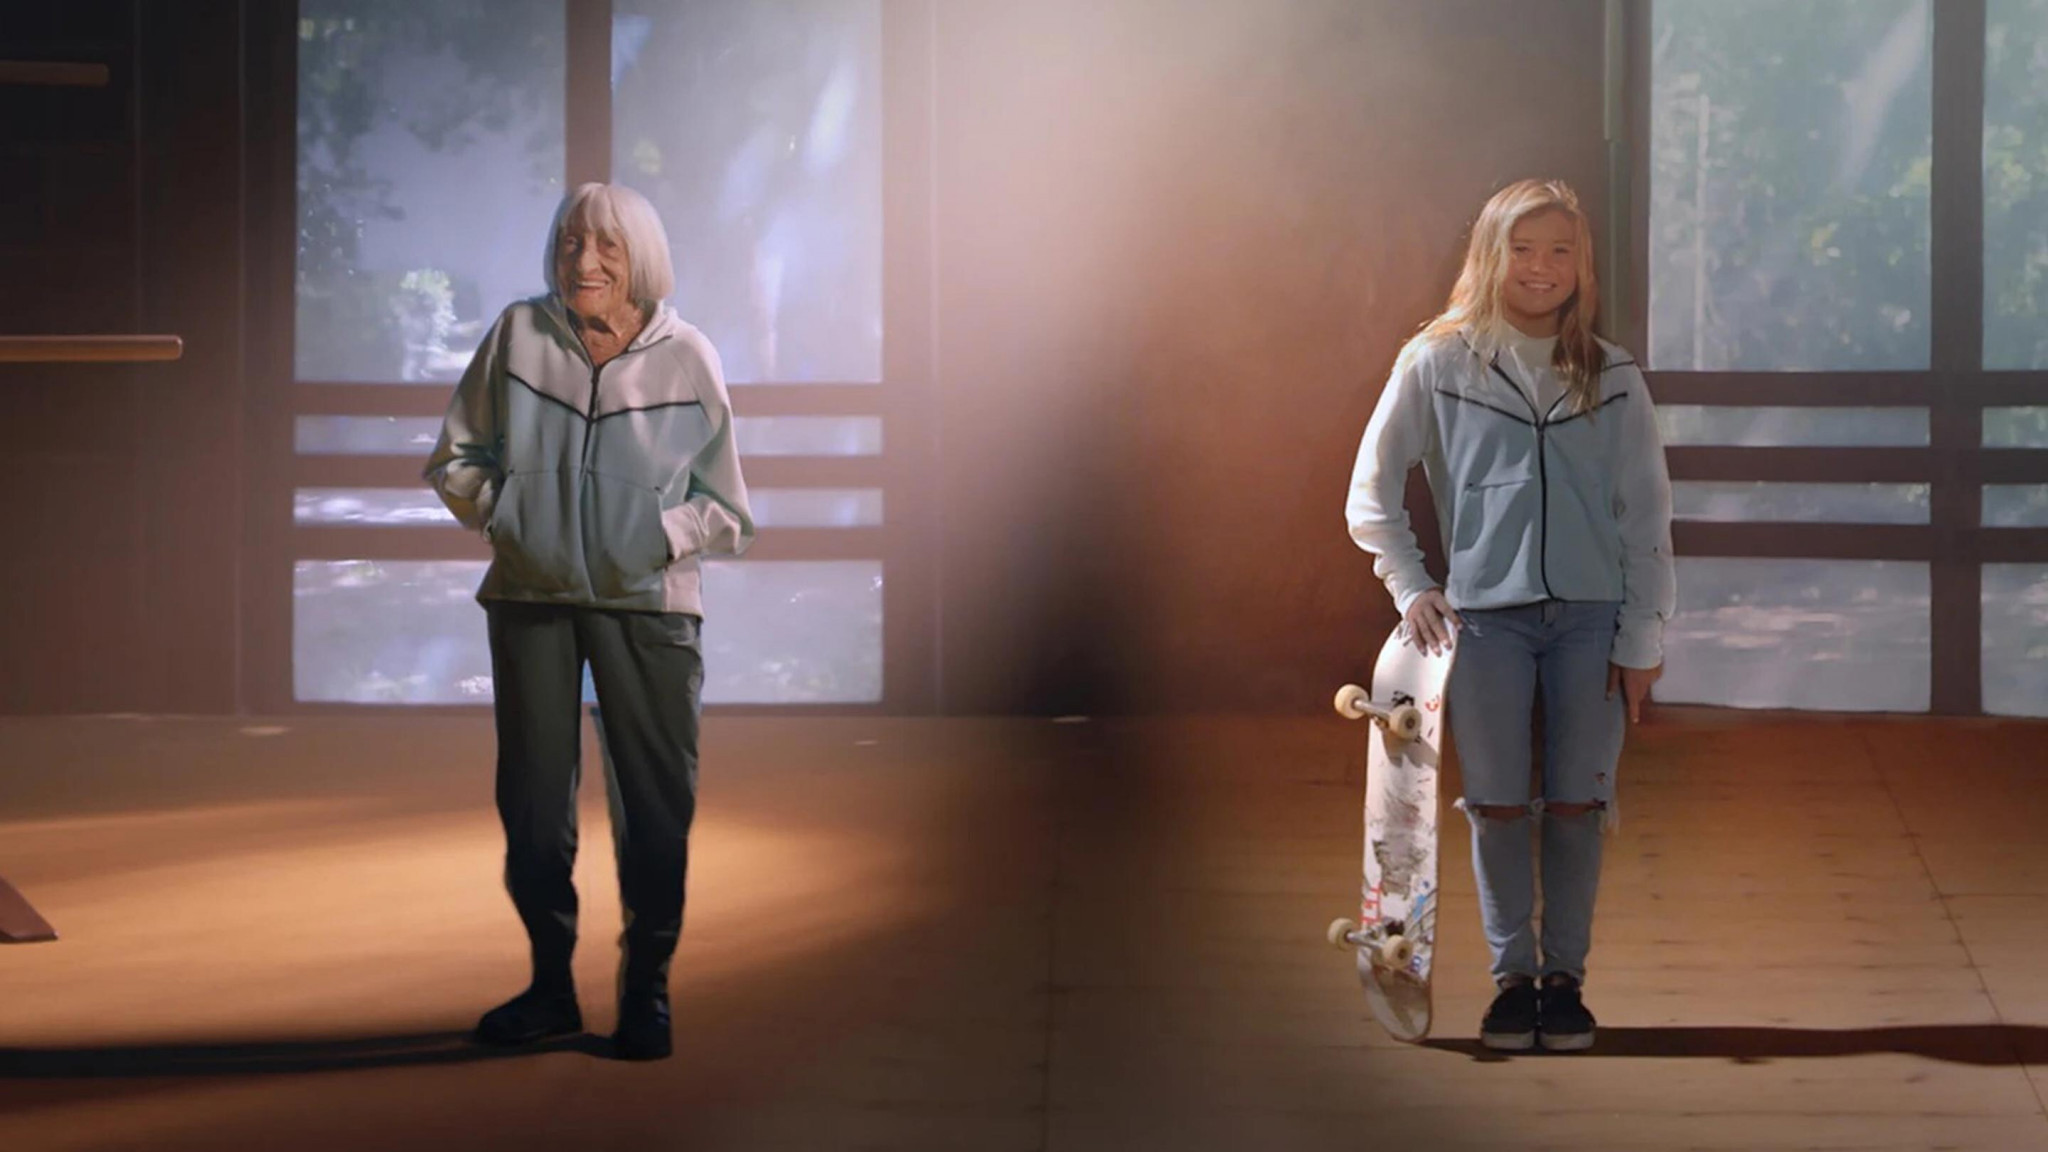 Olympians aged 100 and 13 feature in new IOC film